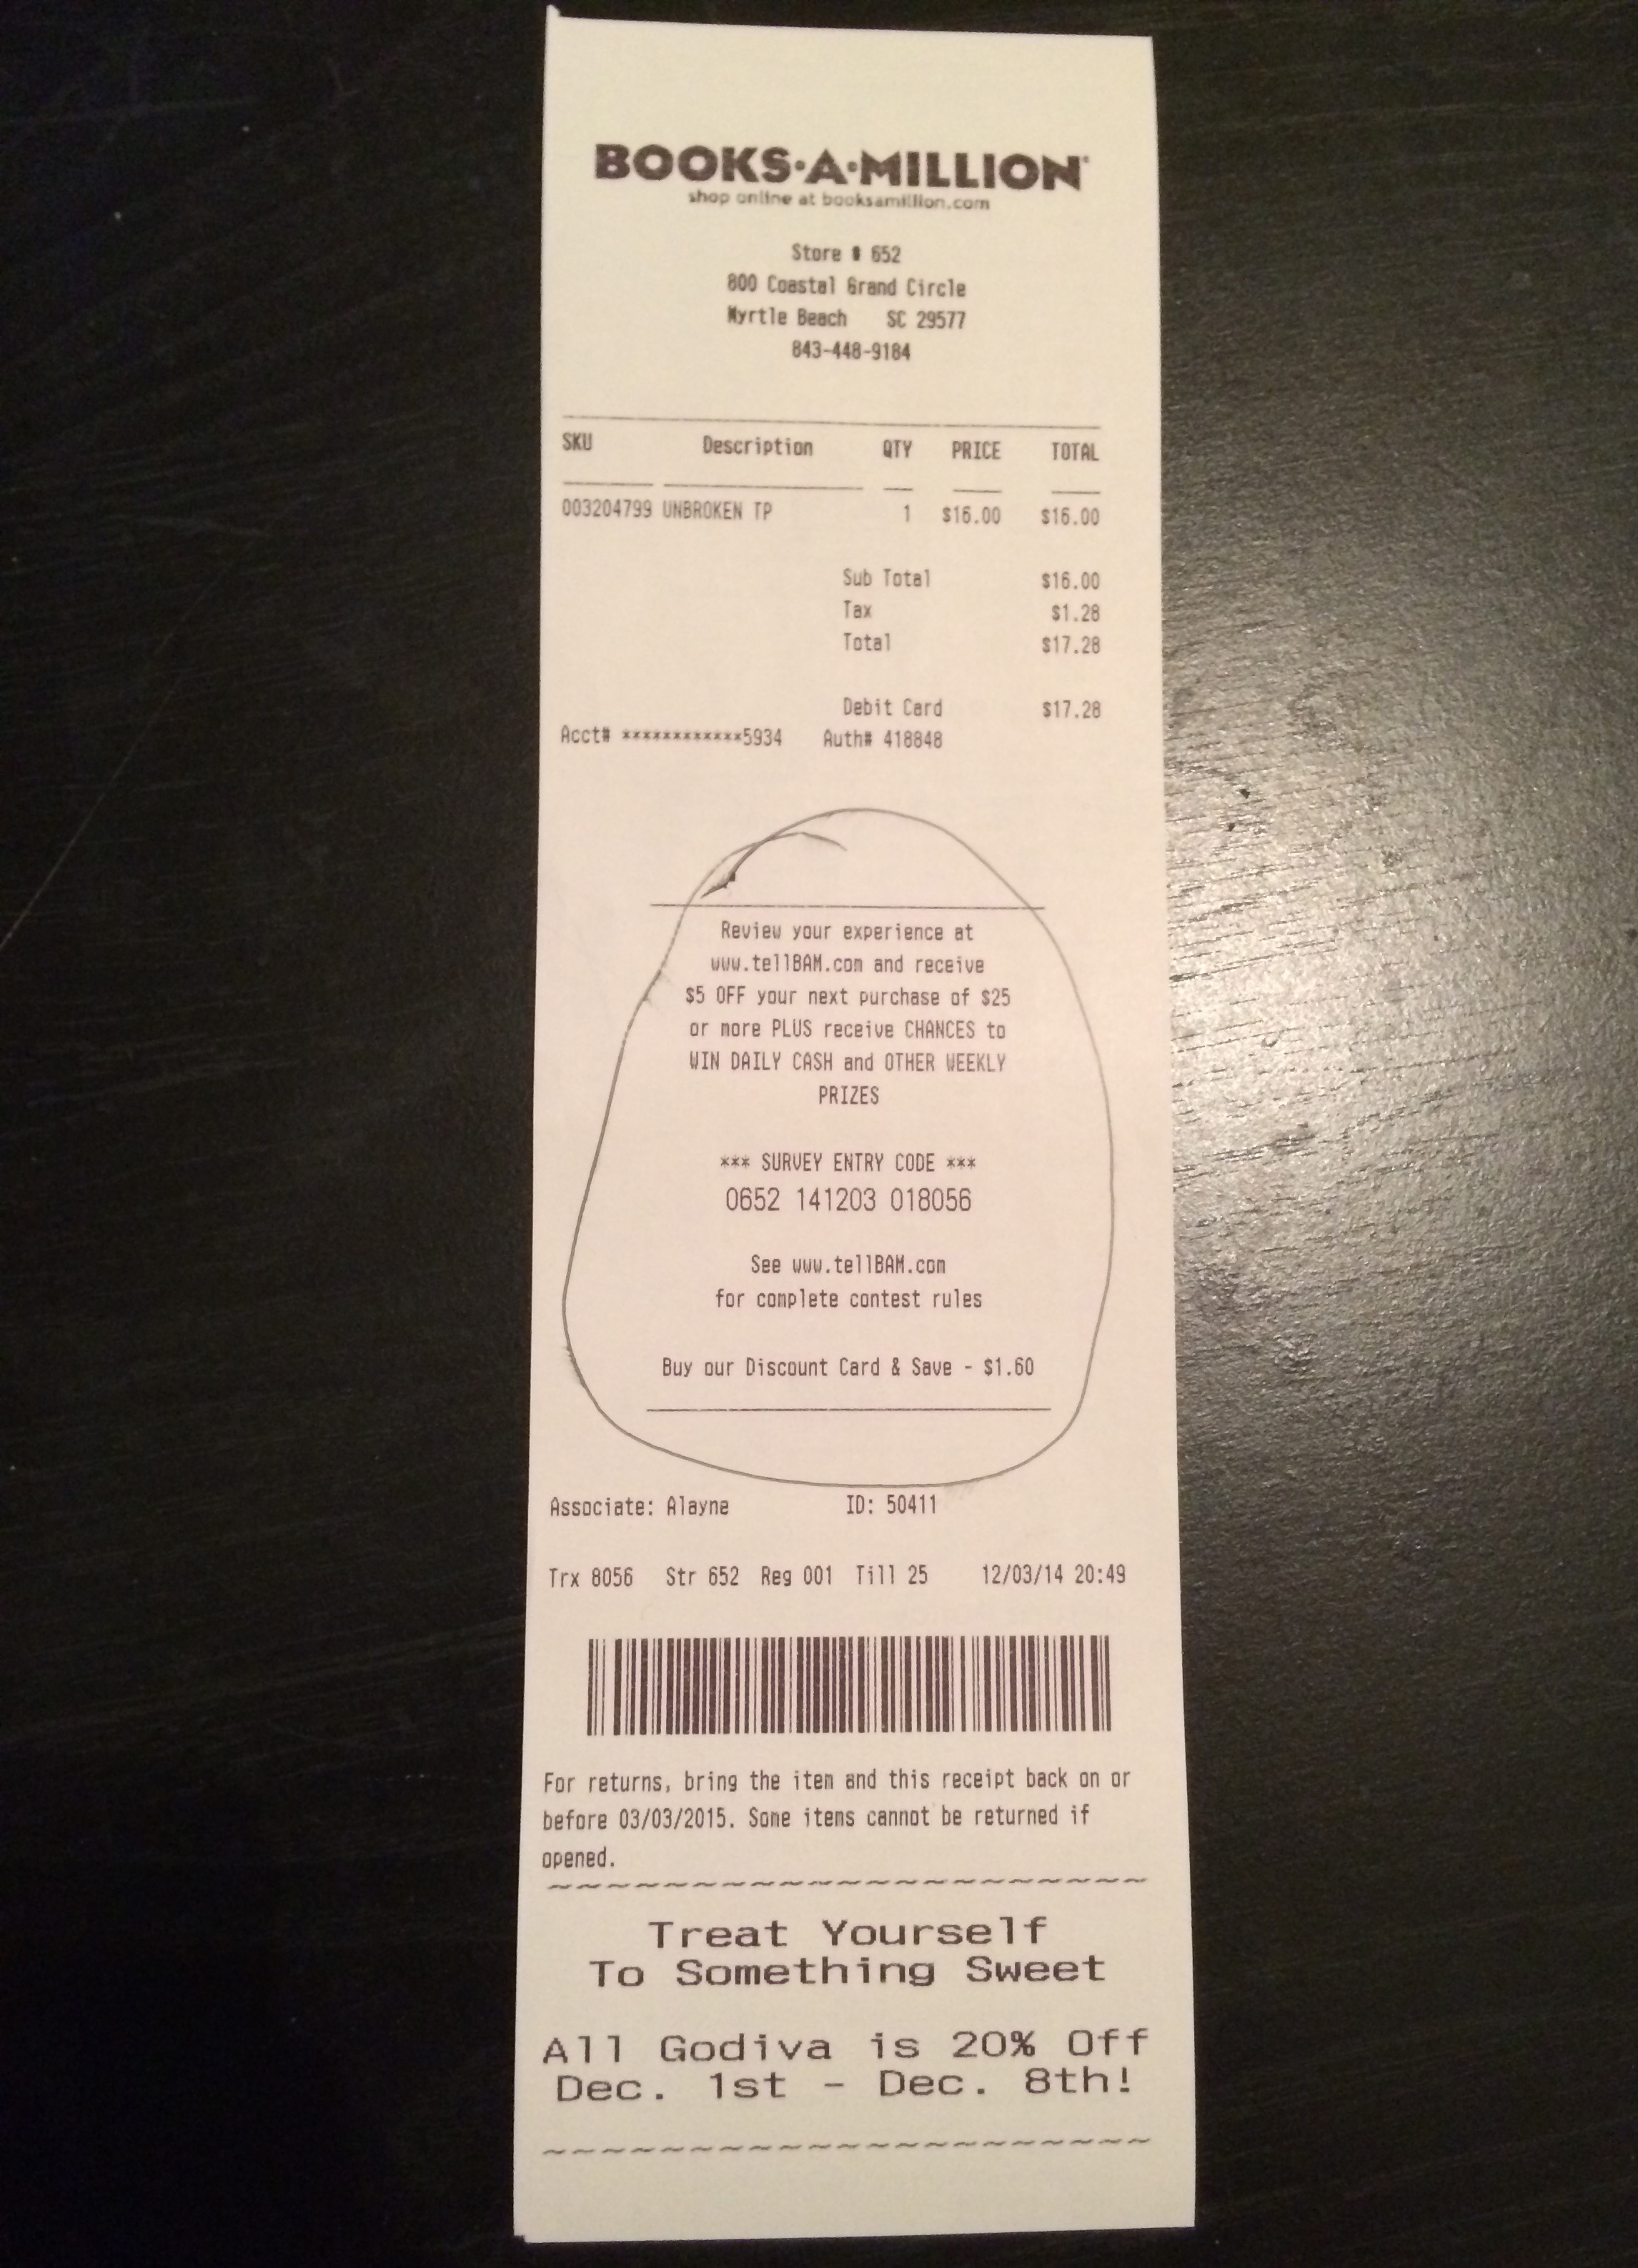 The receipt I received with the scribbled circle.